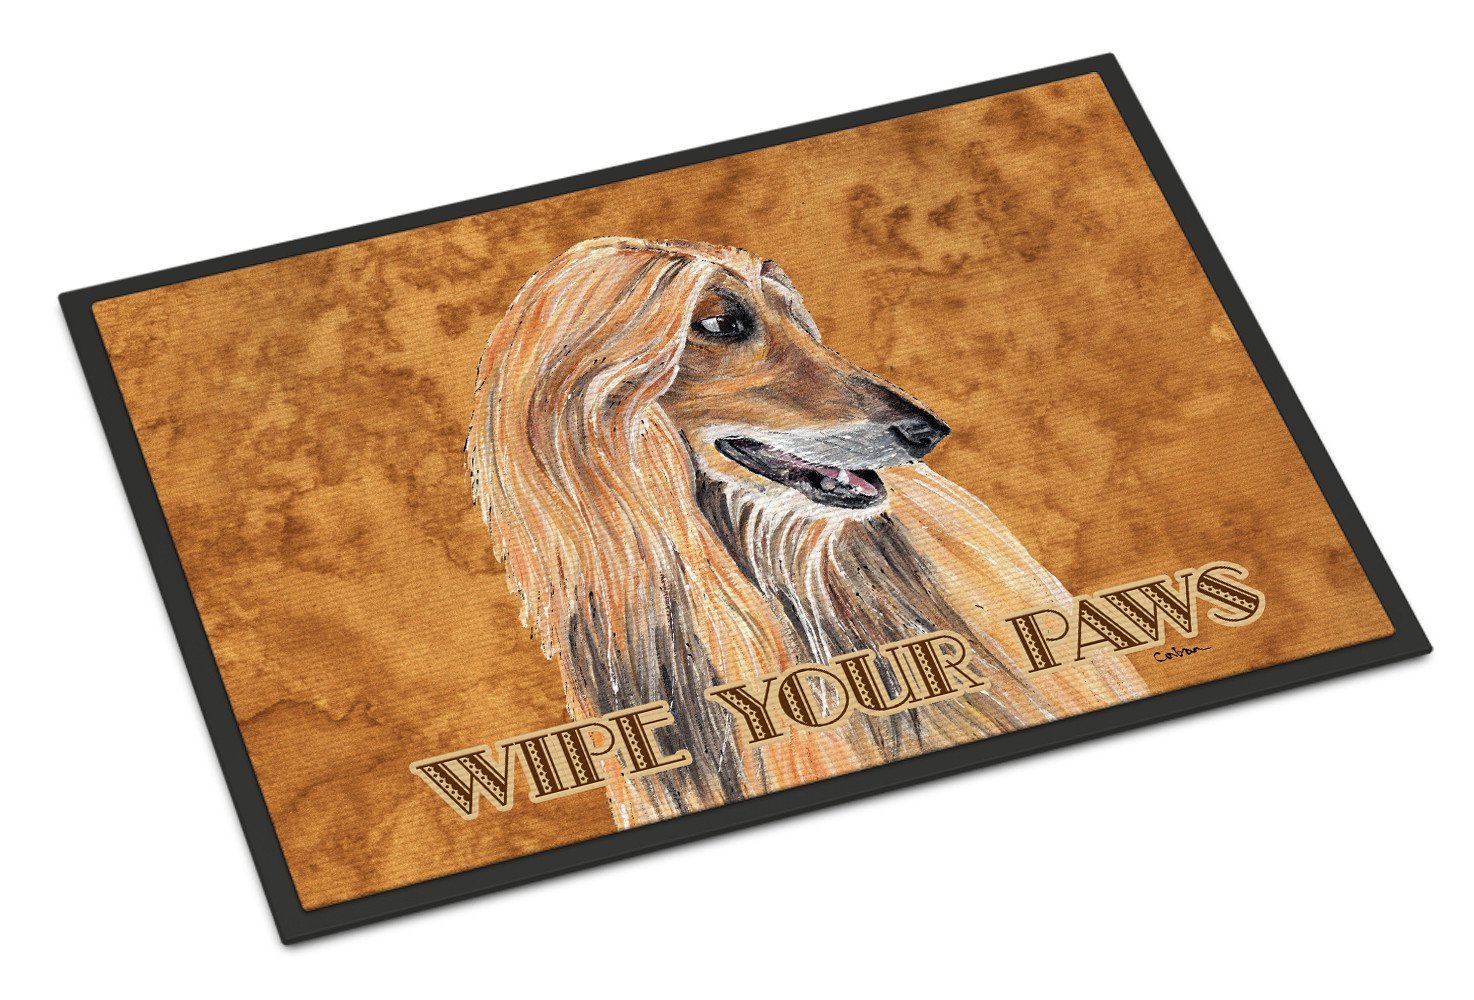 Afghan Hound Indoor or Outdoor Mat 18x27 SC9509MAT - the-store.com